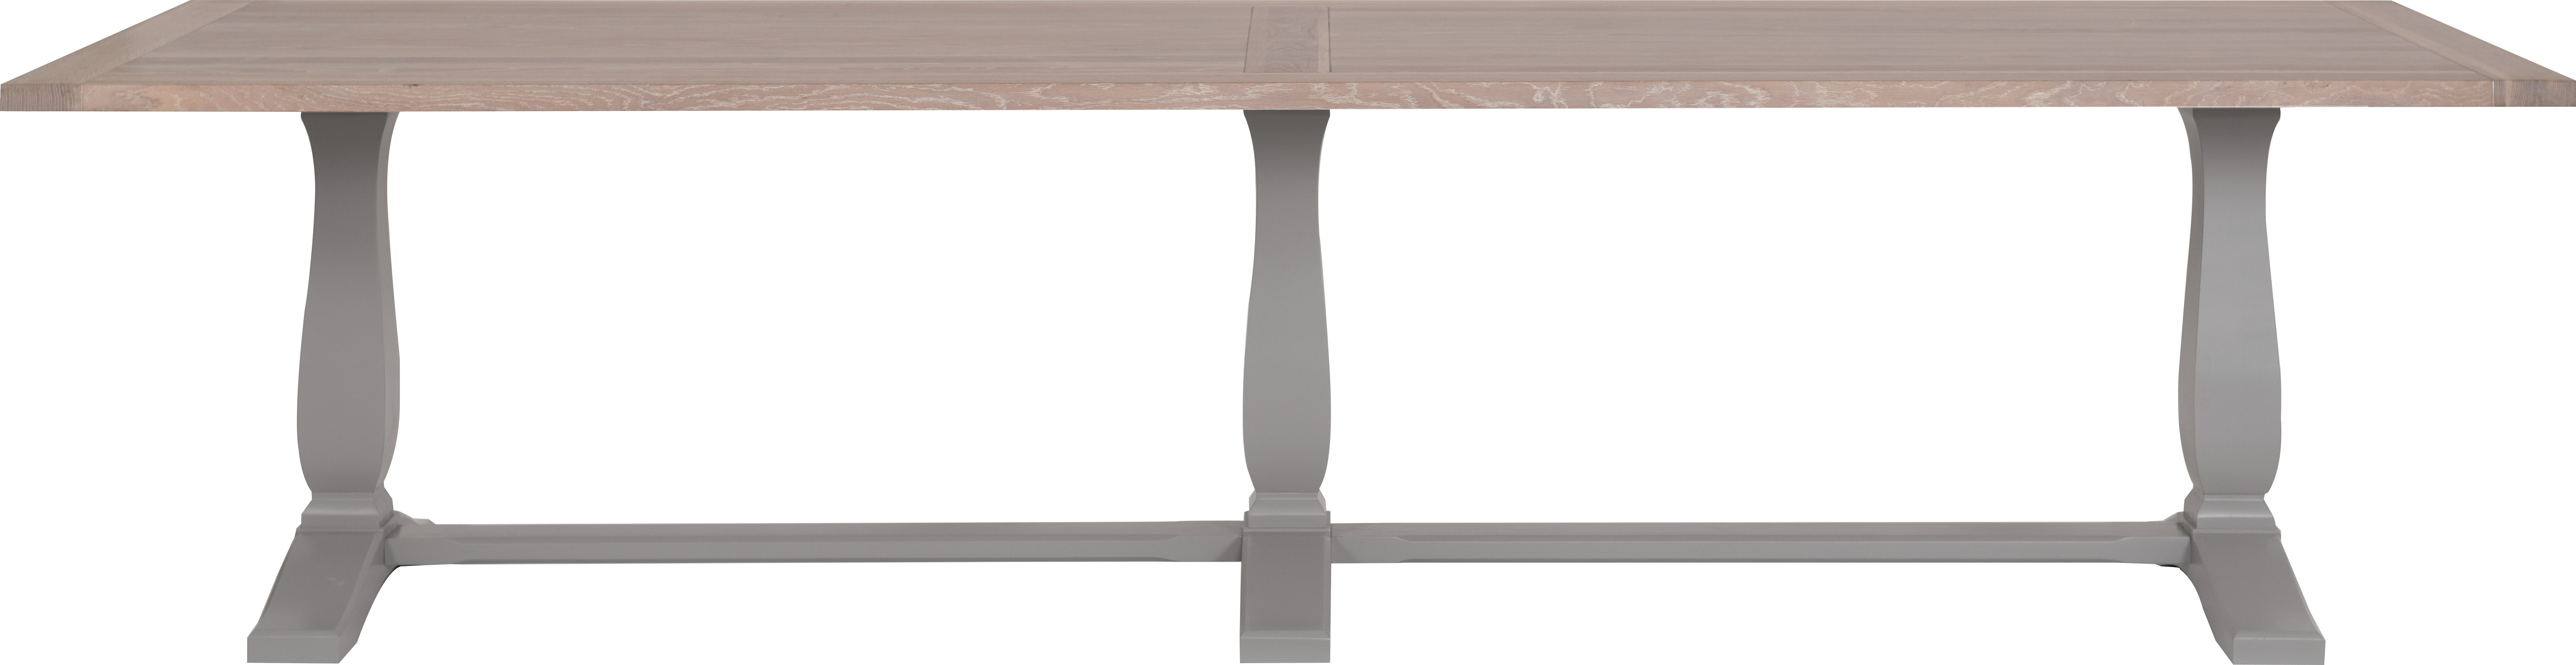 Harrogate 12 Seater Dining Table